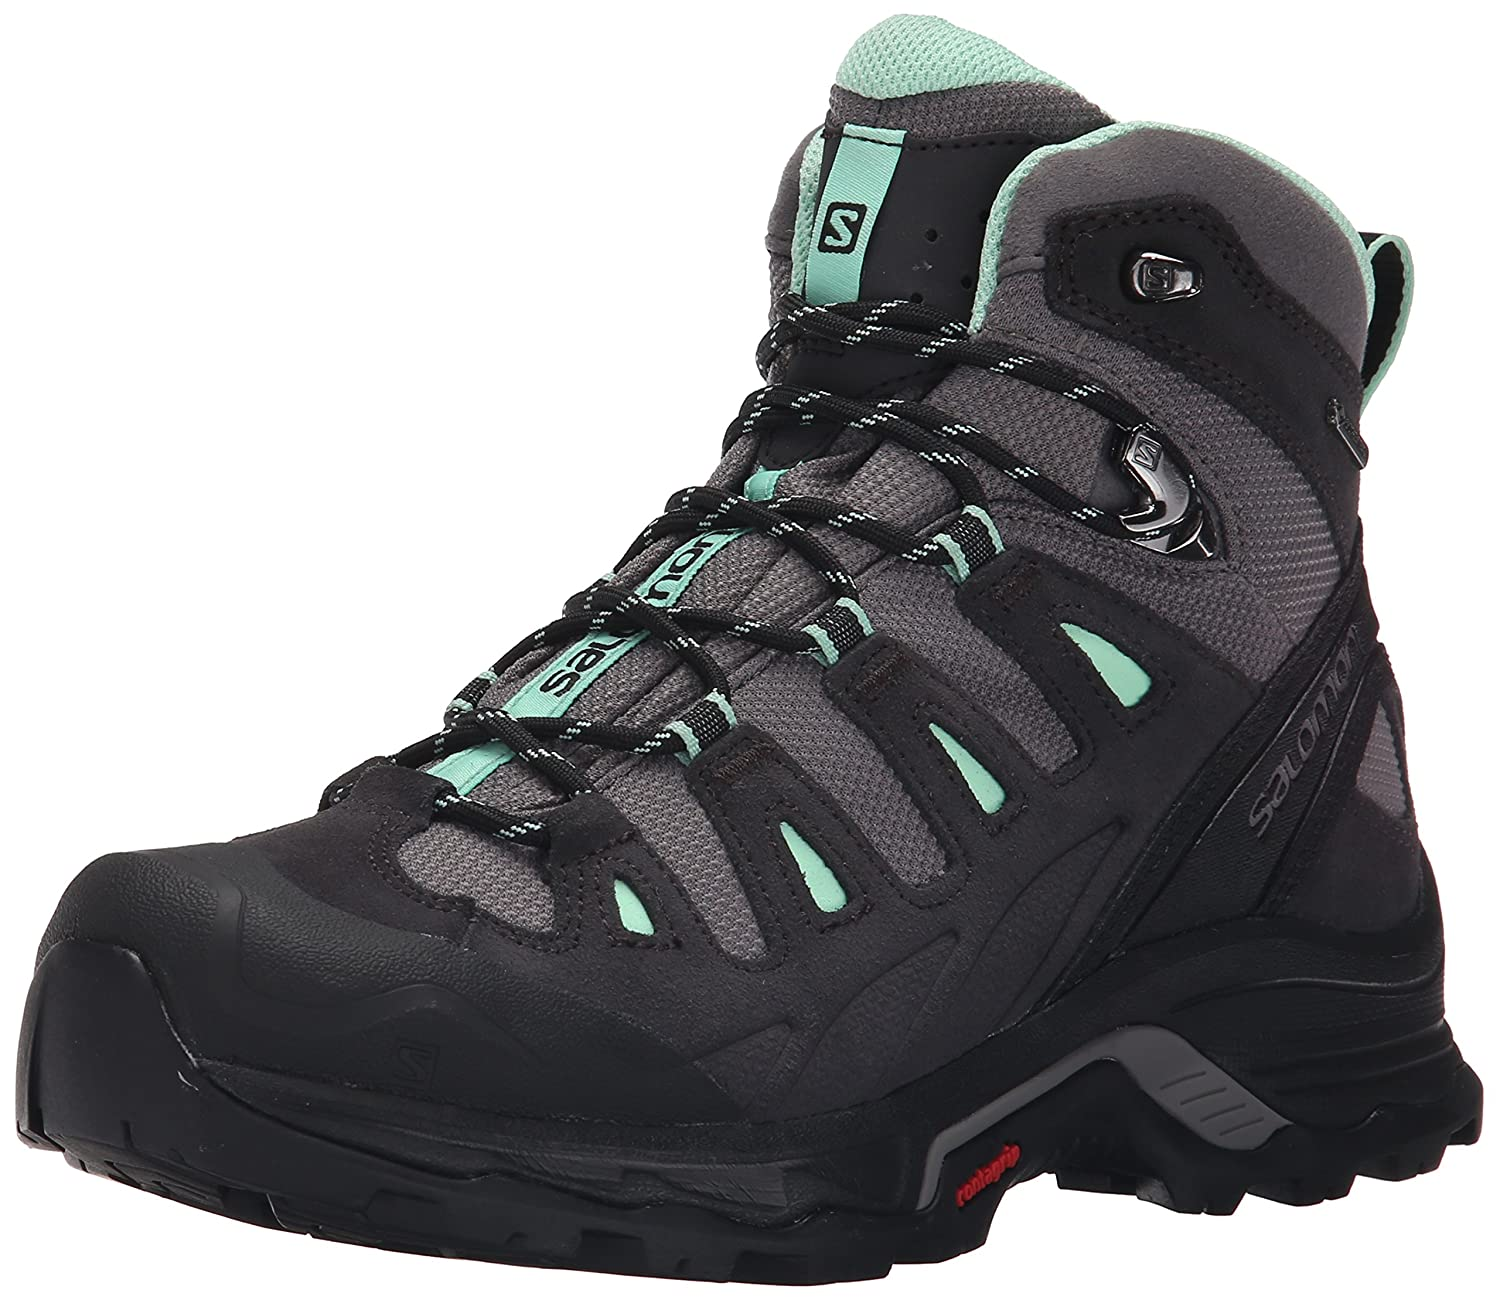 Salomon Women's Quest Prime GTX W Backpacking Boot B00ZLMZ70K 7.5 B(M) US|Detroit/Asphalt/Lucite Green